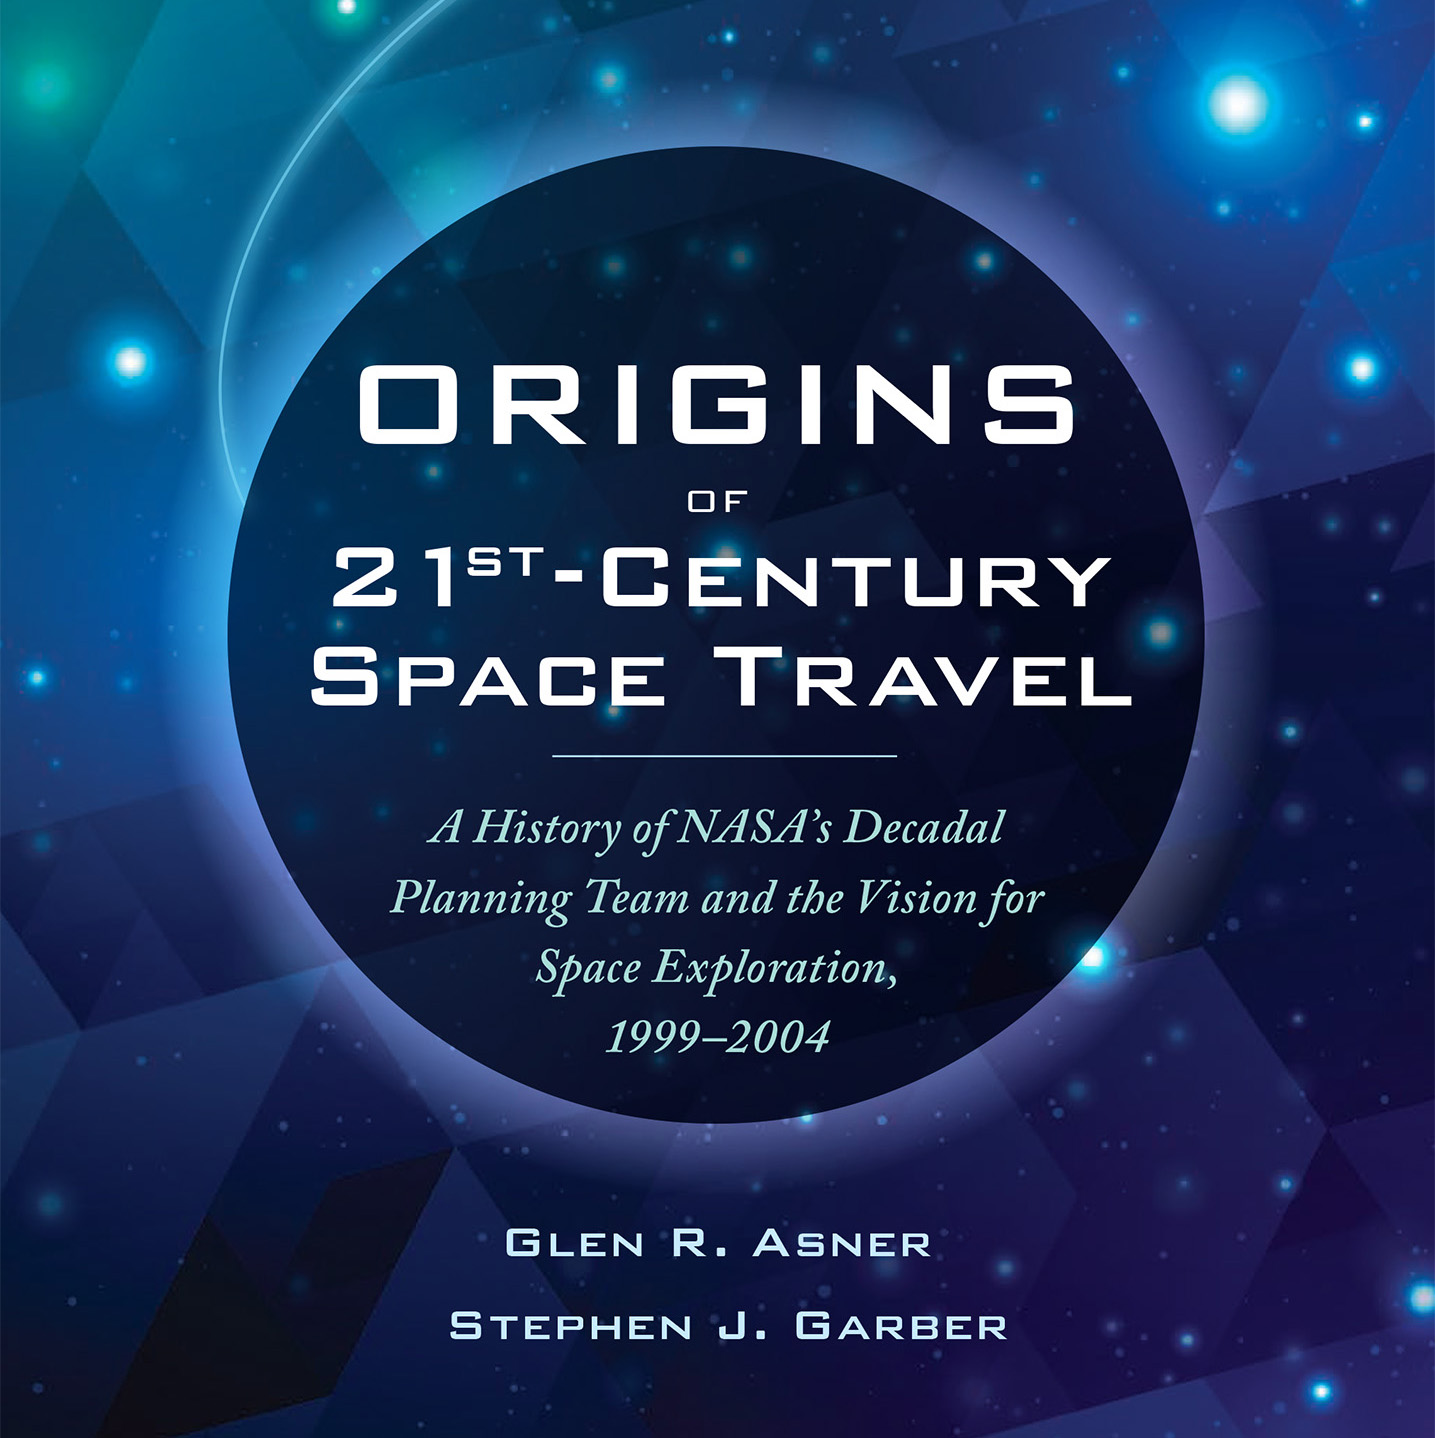 Origins of 21st Century Space Travel